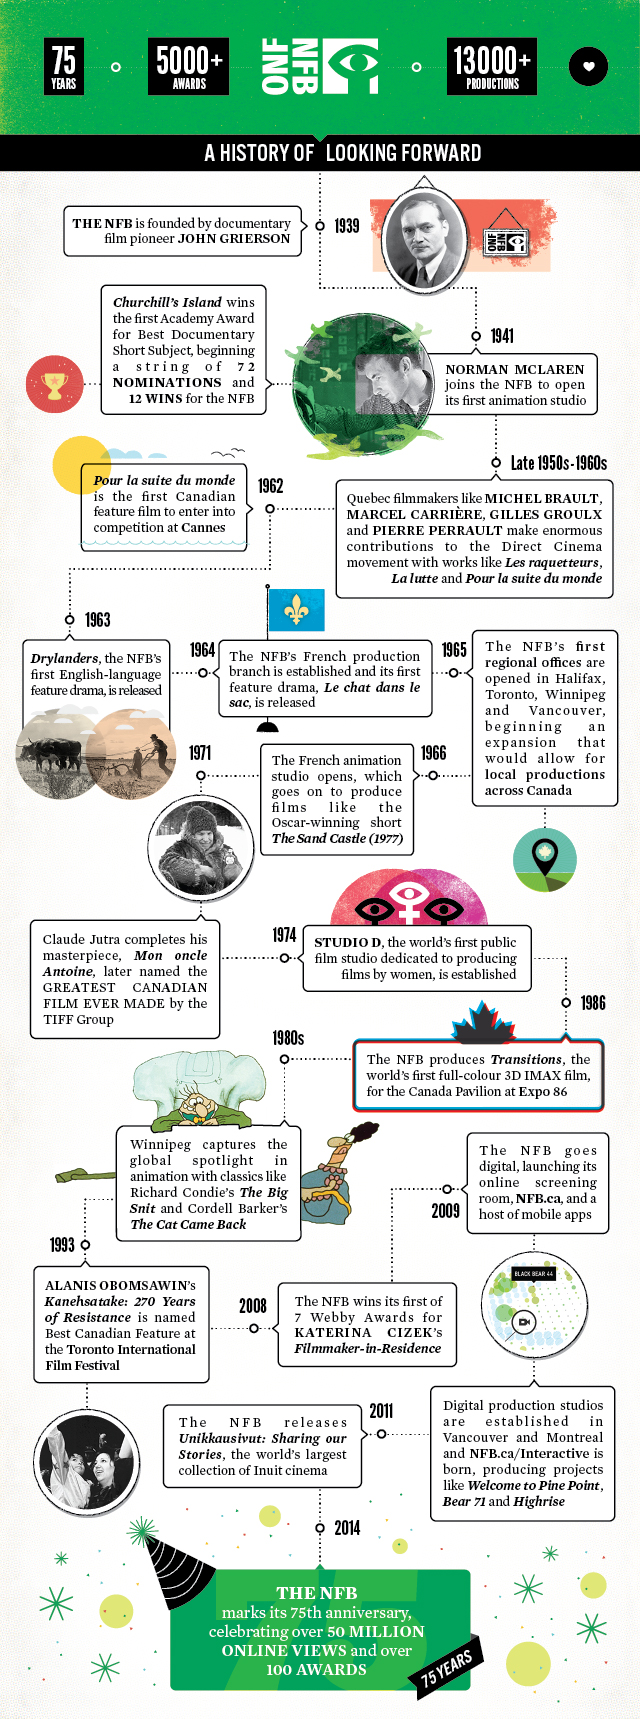 Celebrating 75 years of cinema history with a pretty cool timeline ...